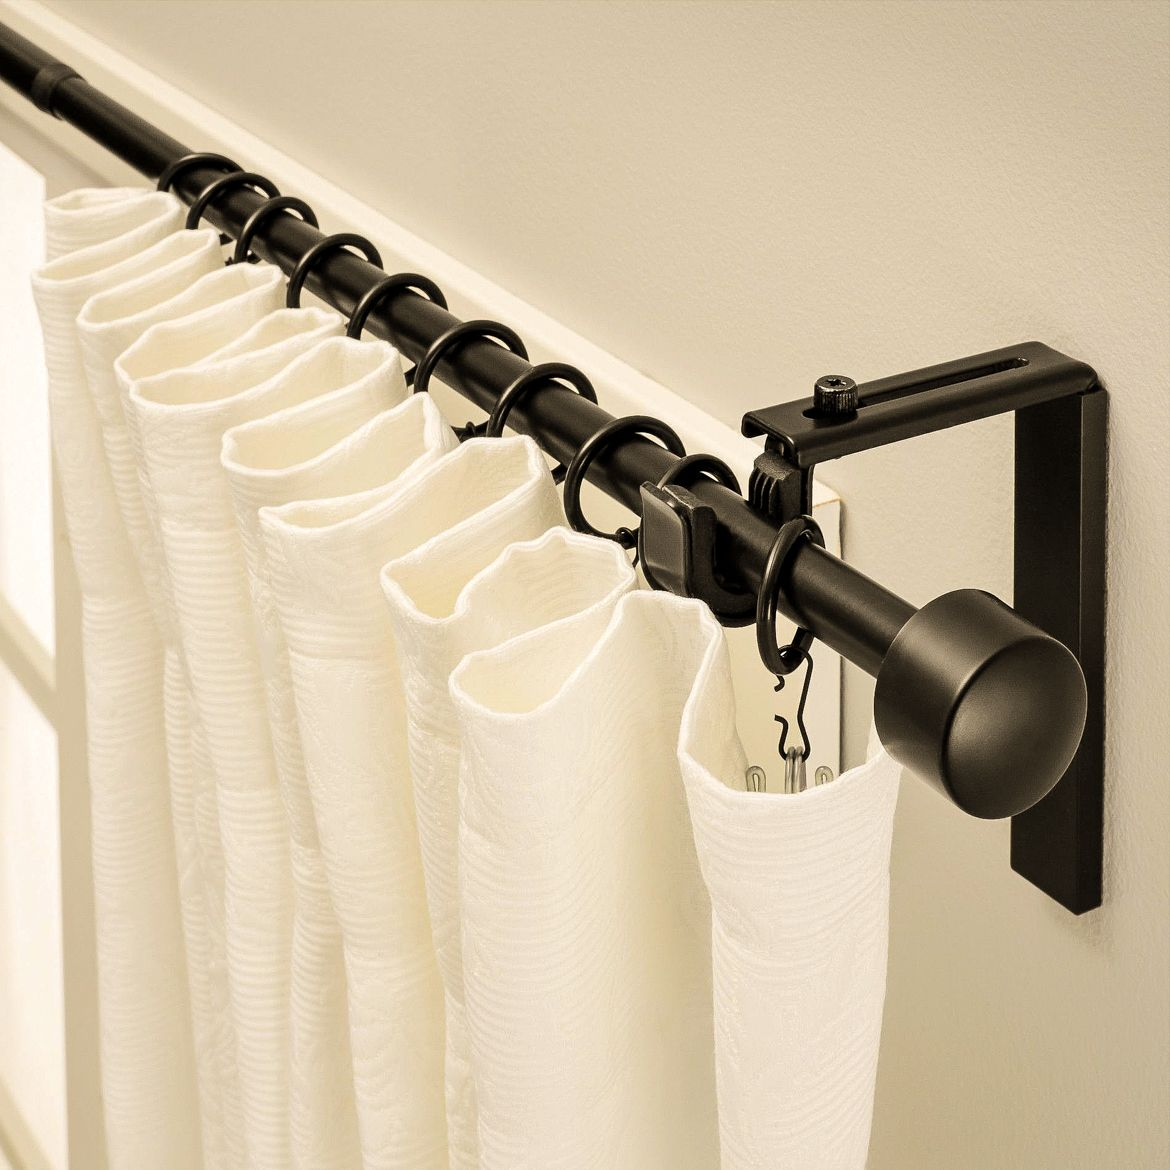 Accent black rod for light curtains